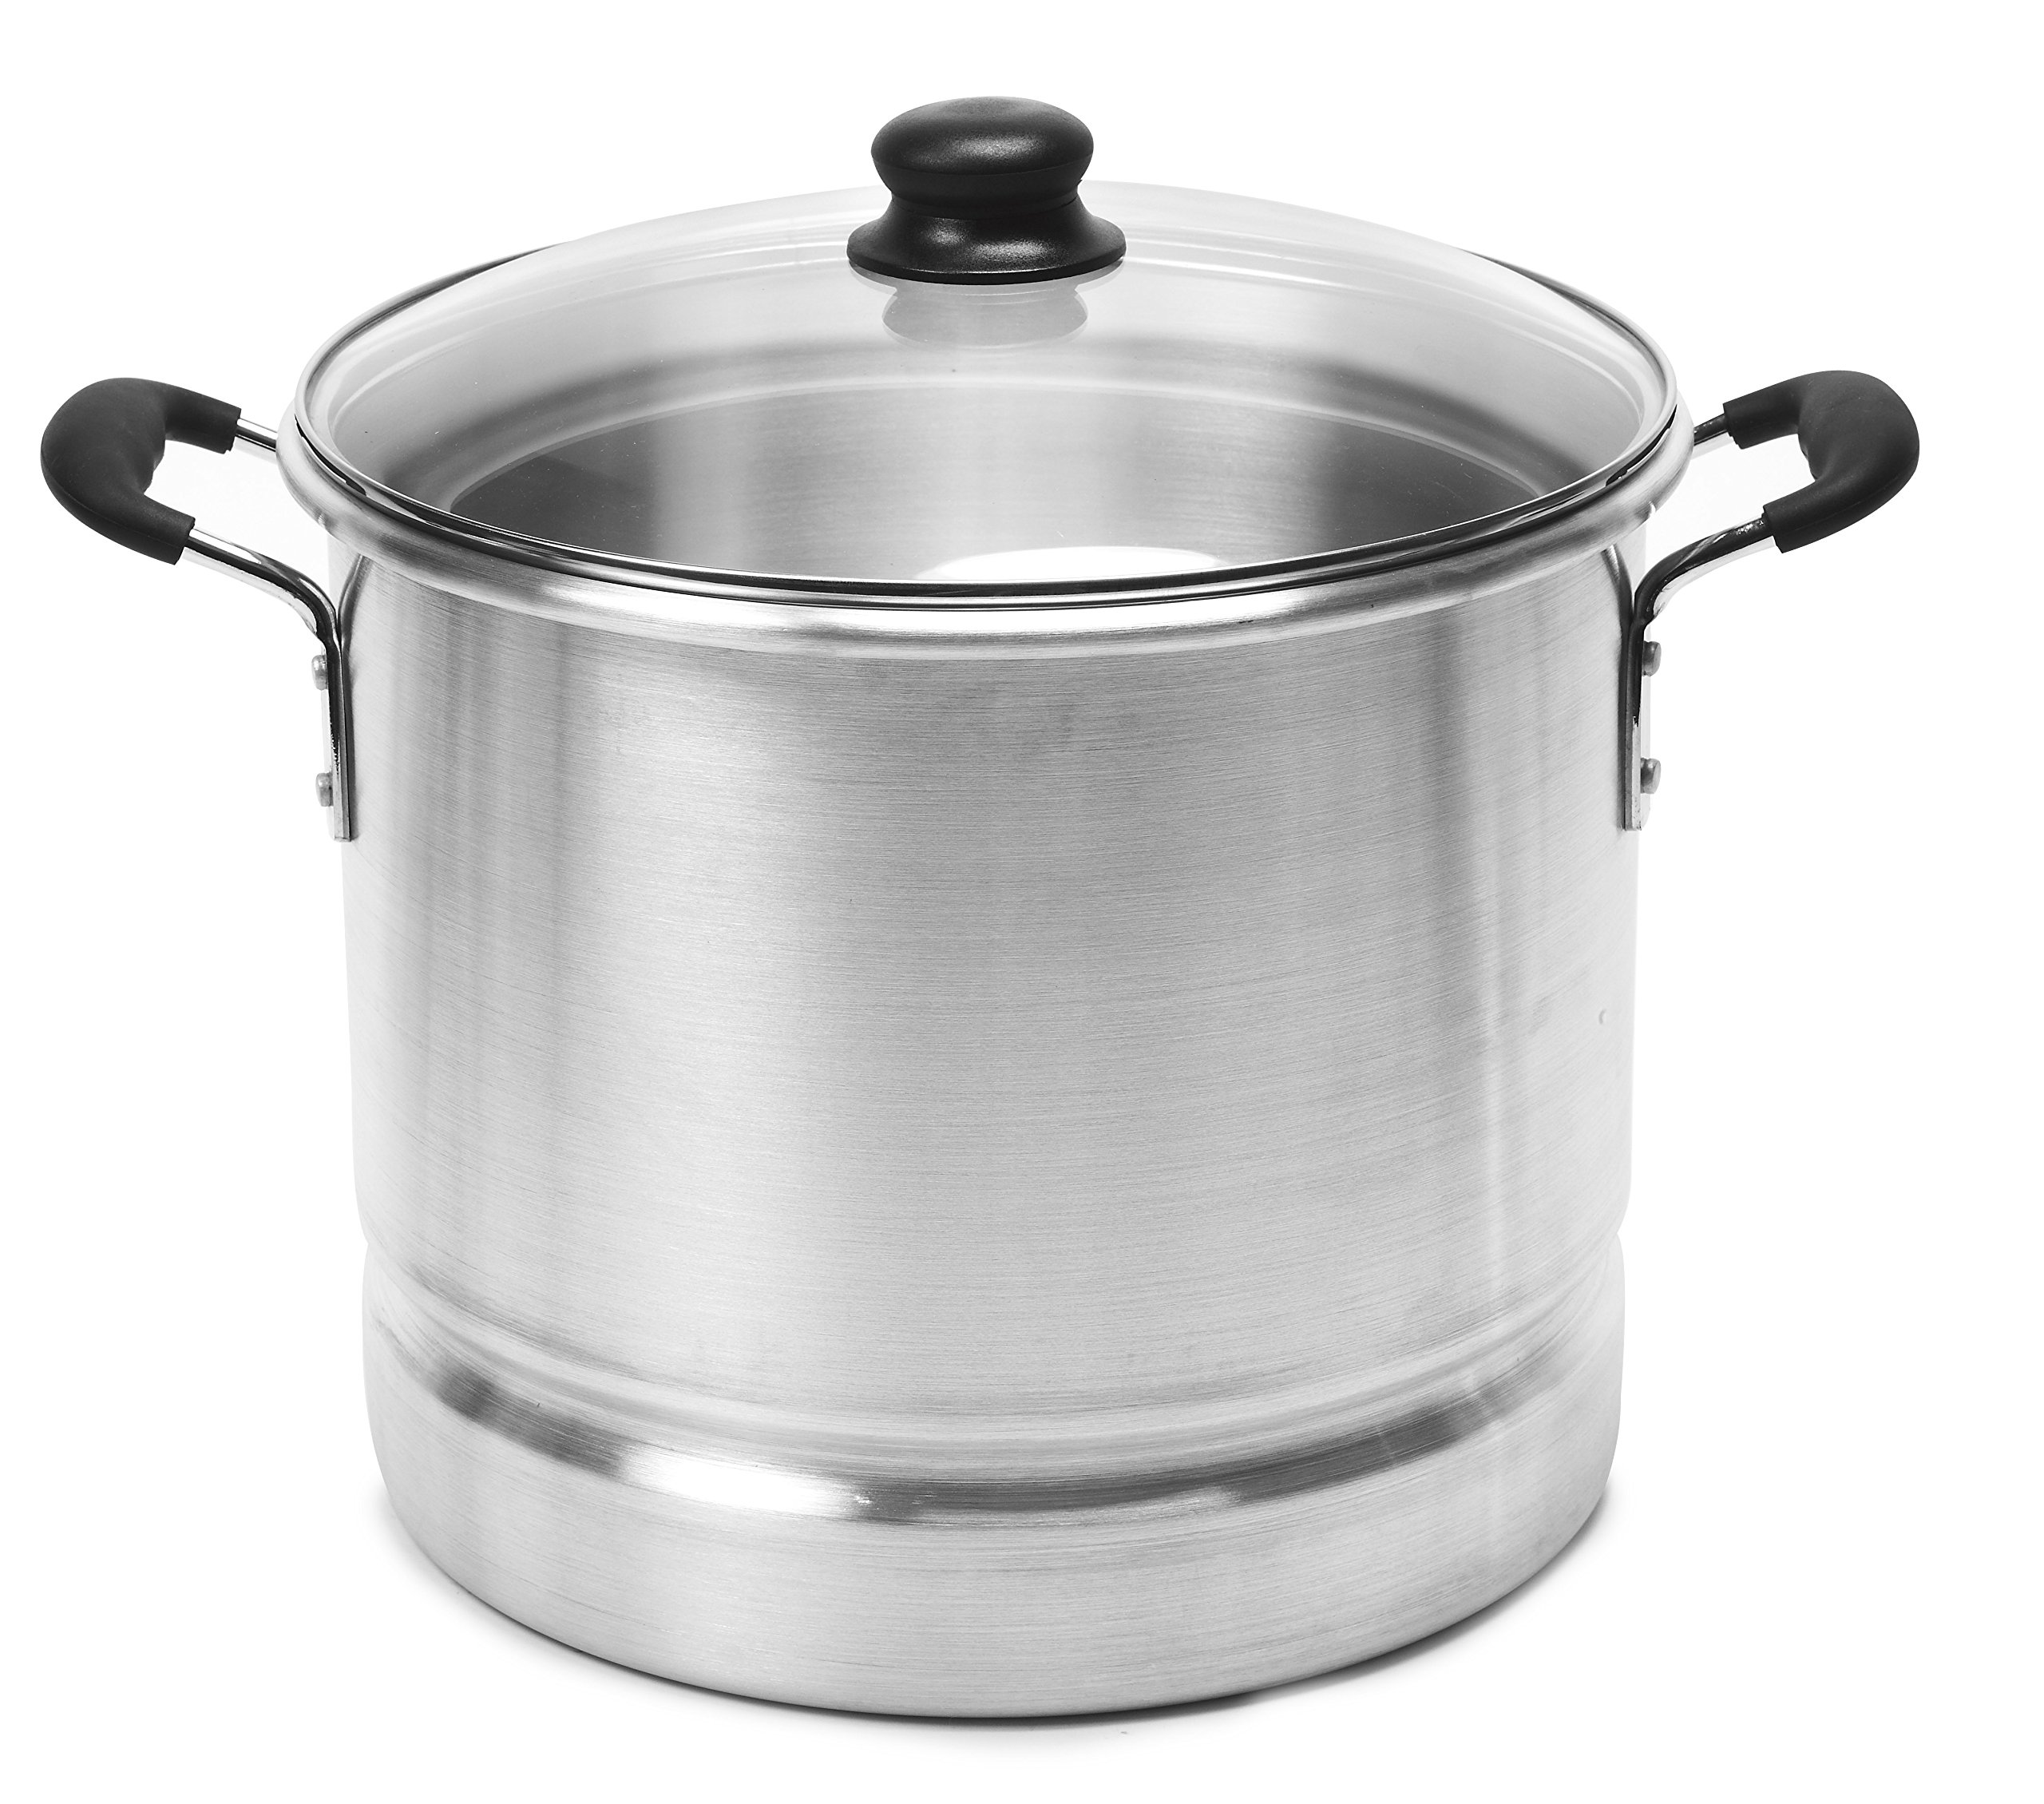 IMUSA USA MEXICANA-420 Steamer with Glass Lid 20-Quart, Silver